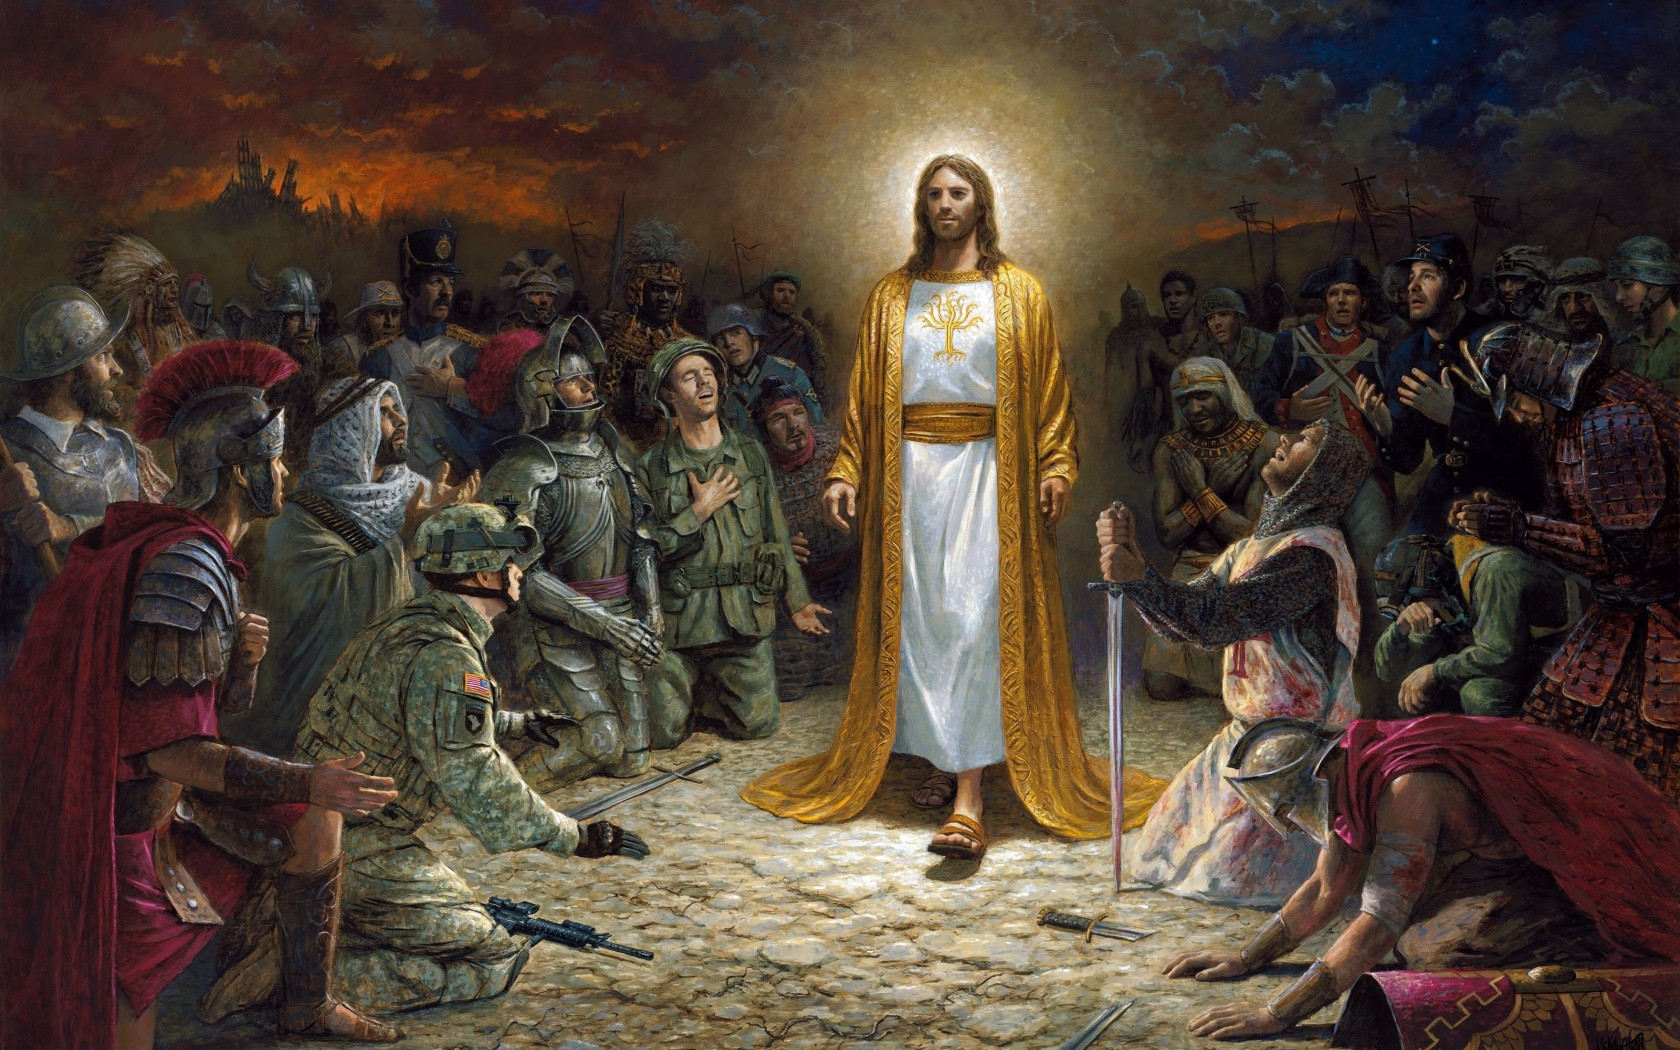 Jesus Christ standing and soldiers bowing down to him